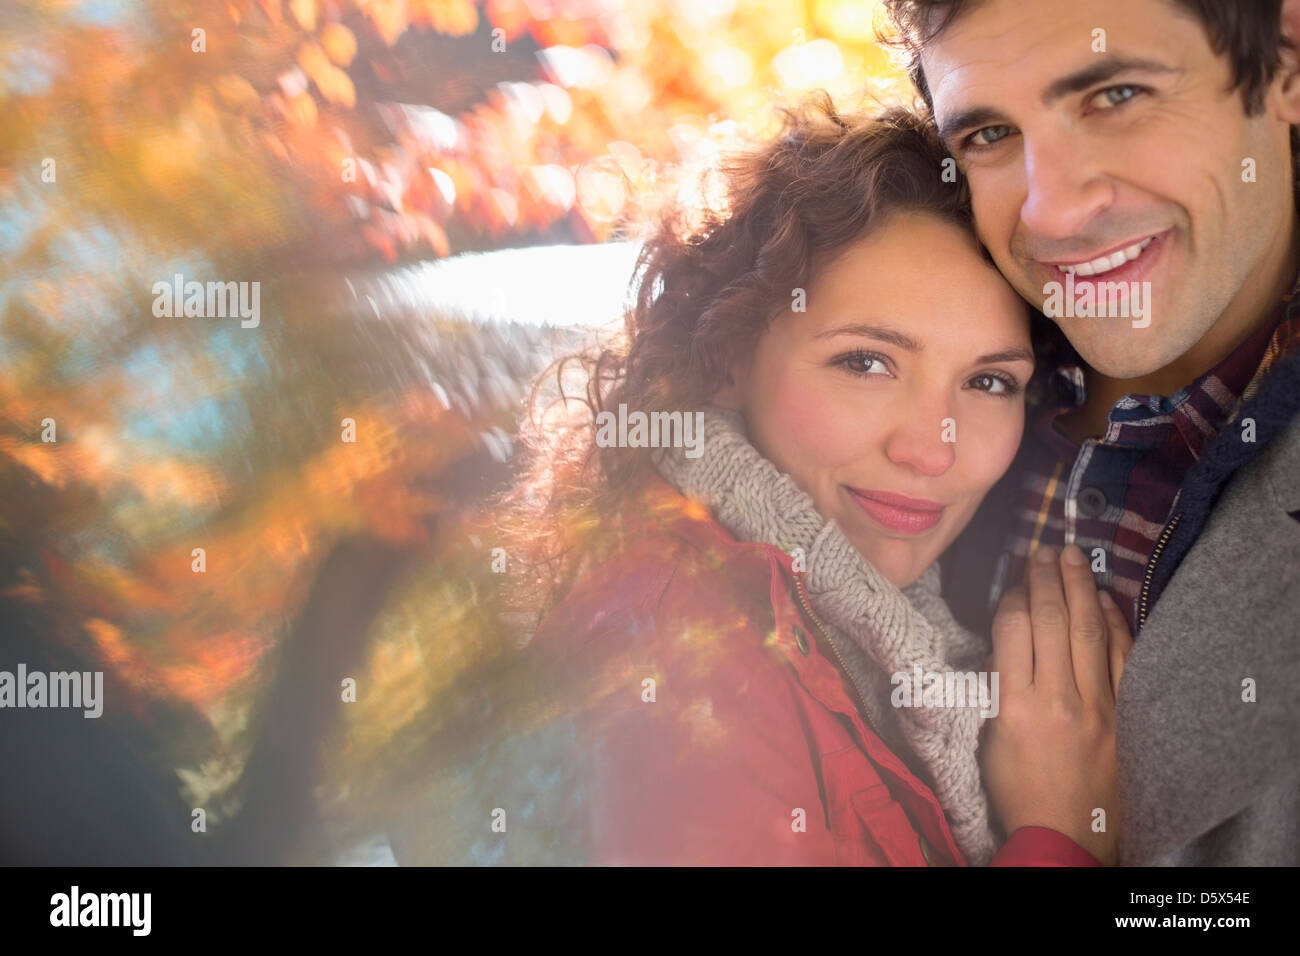 Couple hugging in park - Stock Image